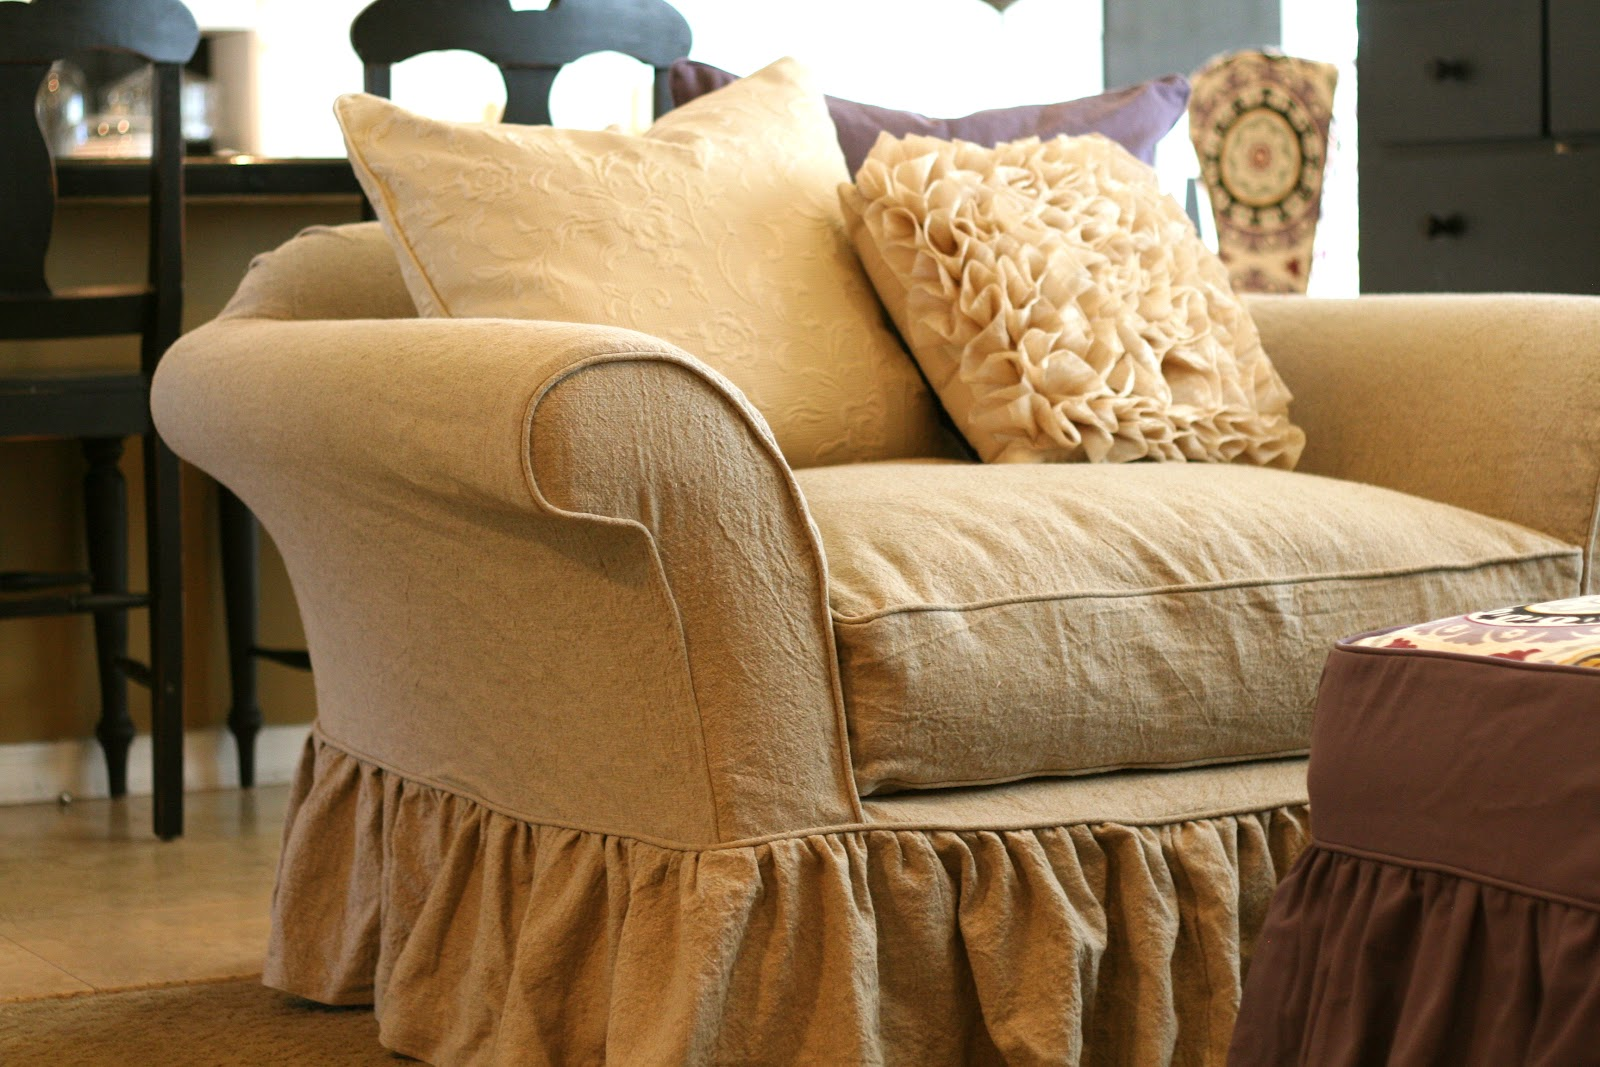 Custom Slipcovers By Shelley Marylu S Tan Linen Slipcovers